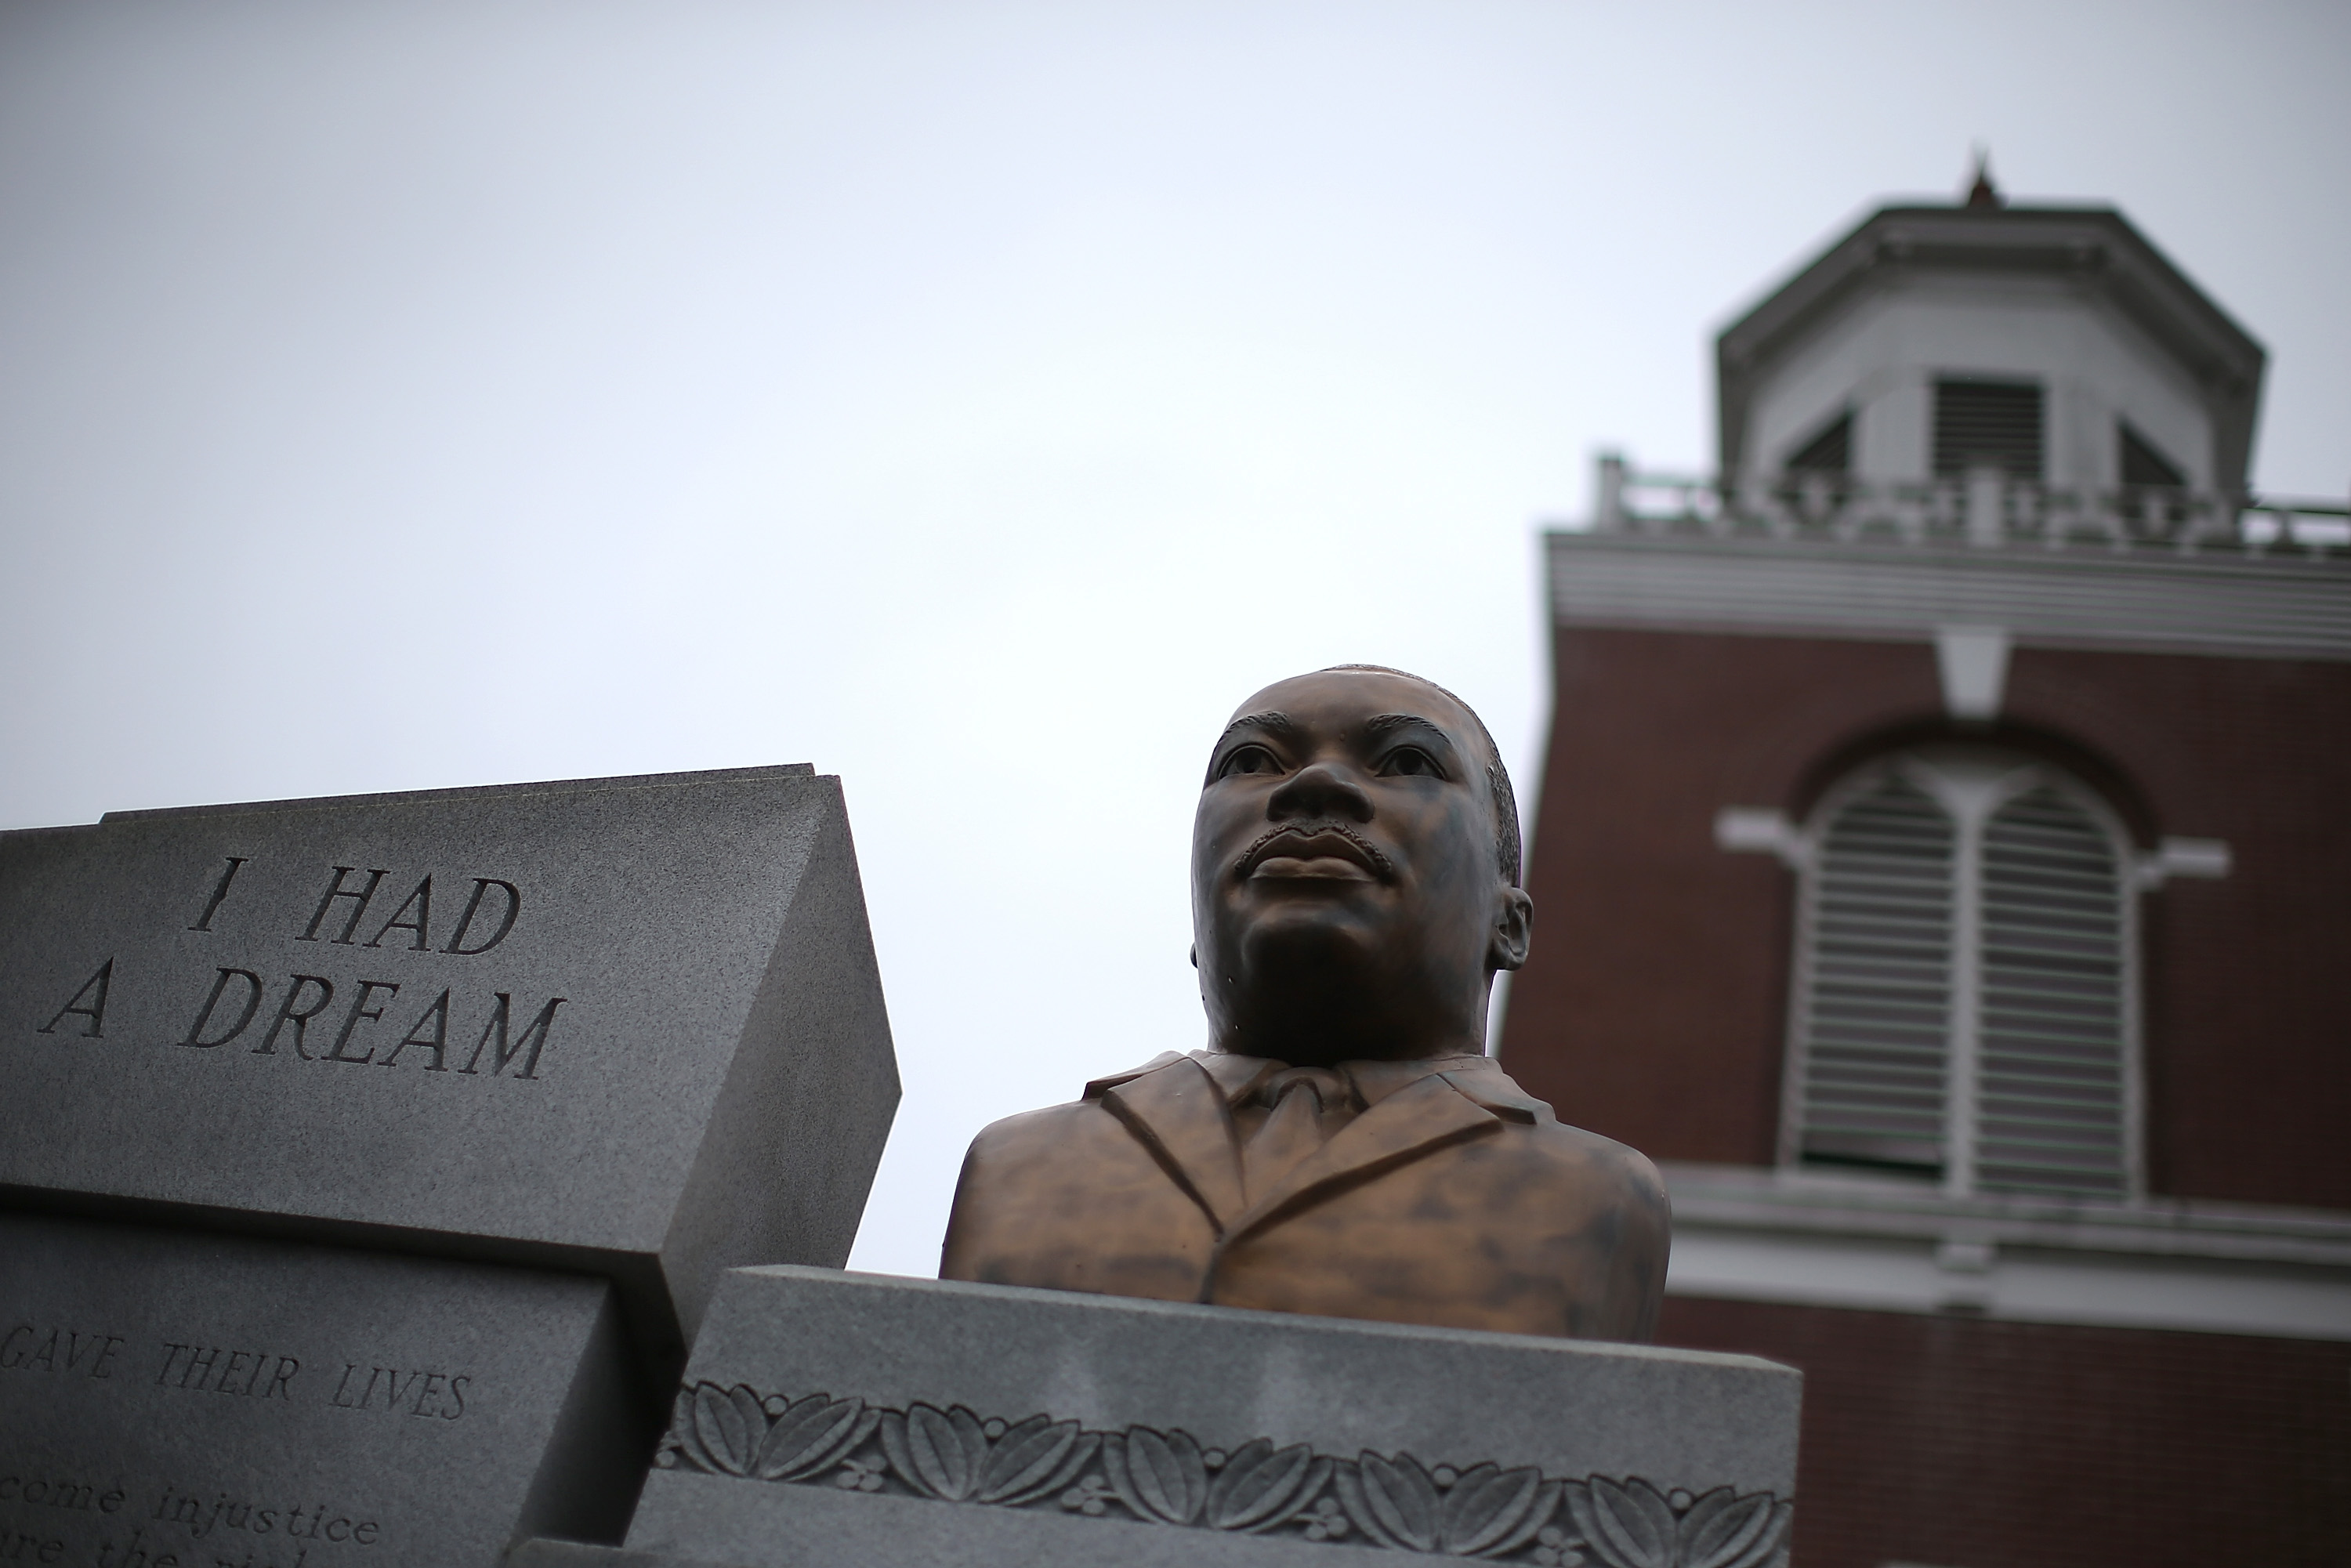 SELMA, AL - MARCH 05: A bust of Dr. Martin Luther King is displayed in front of the Brown Chapel AME Church on March 5, 2015 in Selma, Alabama. Selma is preparing to commemorate the 50th anniversary of the famed civil rights march from Selma to Montgomery that resulted in a violent confrontation with Selma police and State Troopers on the Edmund Pettus Bridge on March 7, 1965. (Photo by Justin Sullivan/Getty Images)